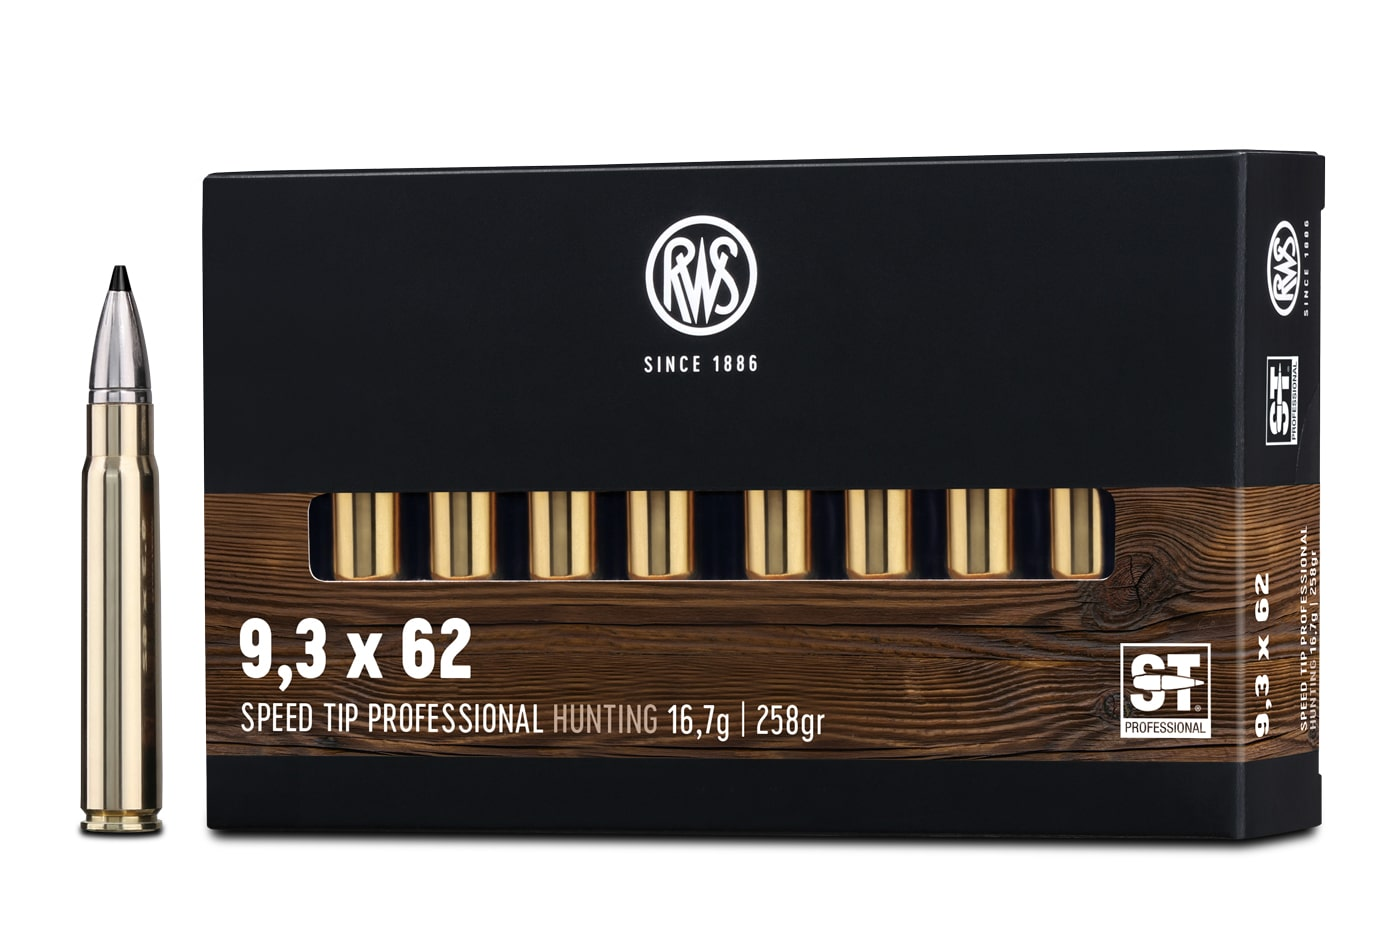 RWS 9,3 x 62 SPEED TIP PROFESSIONAL